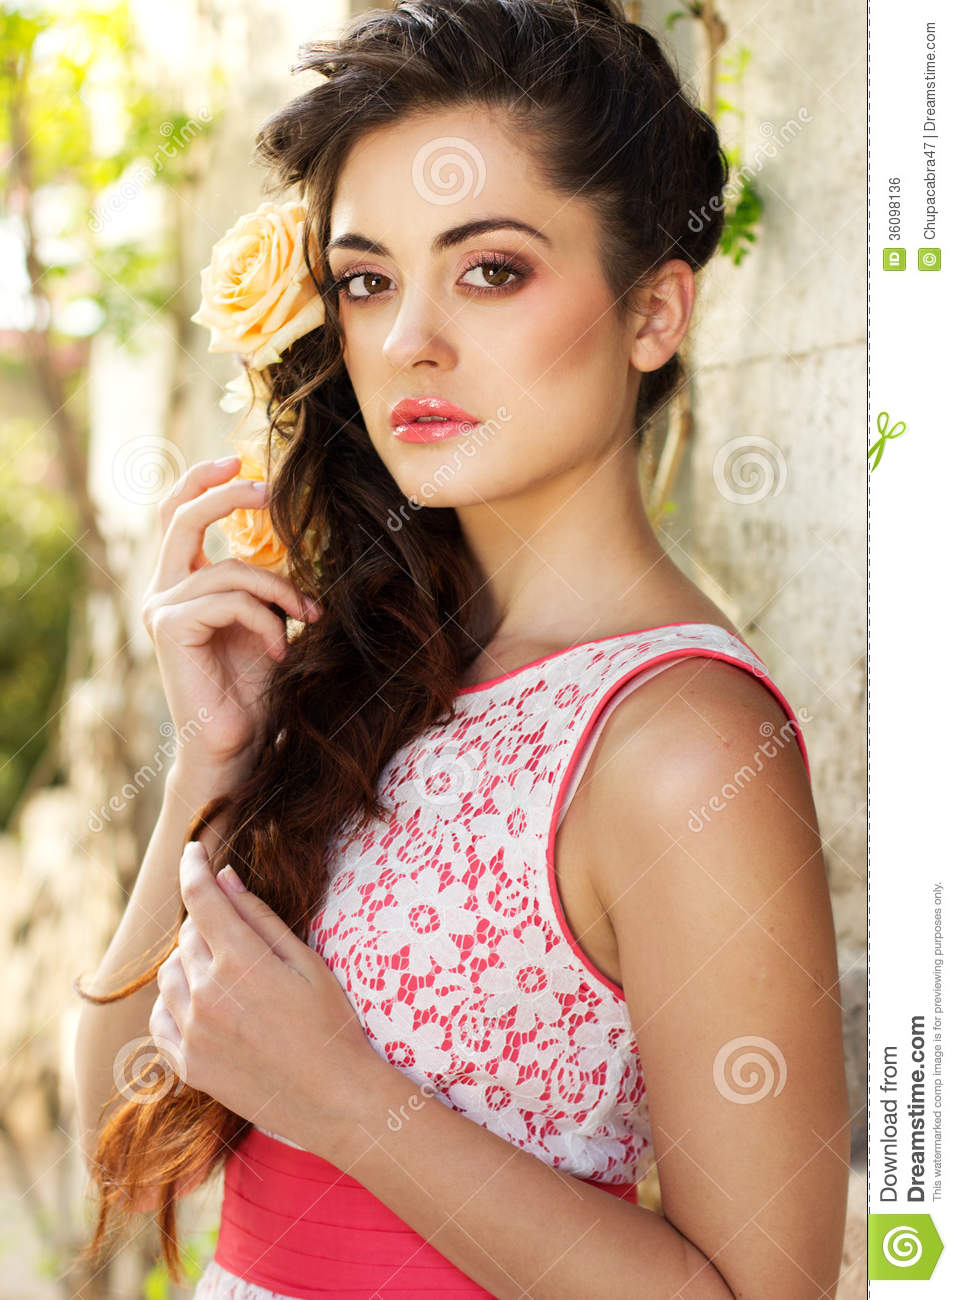 Beautiful woman with roses royalty free stock image image 36098136 beautiful woman dhlflorist Gallery